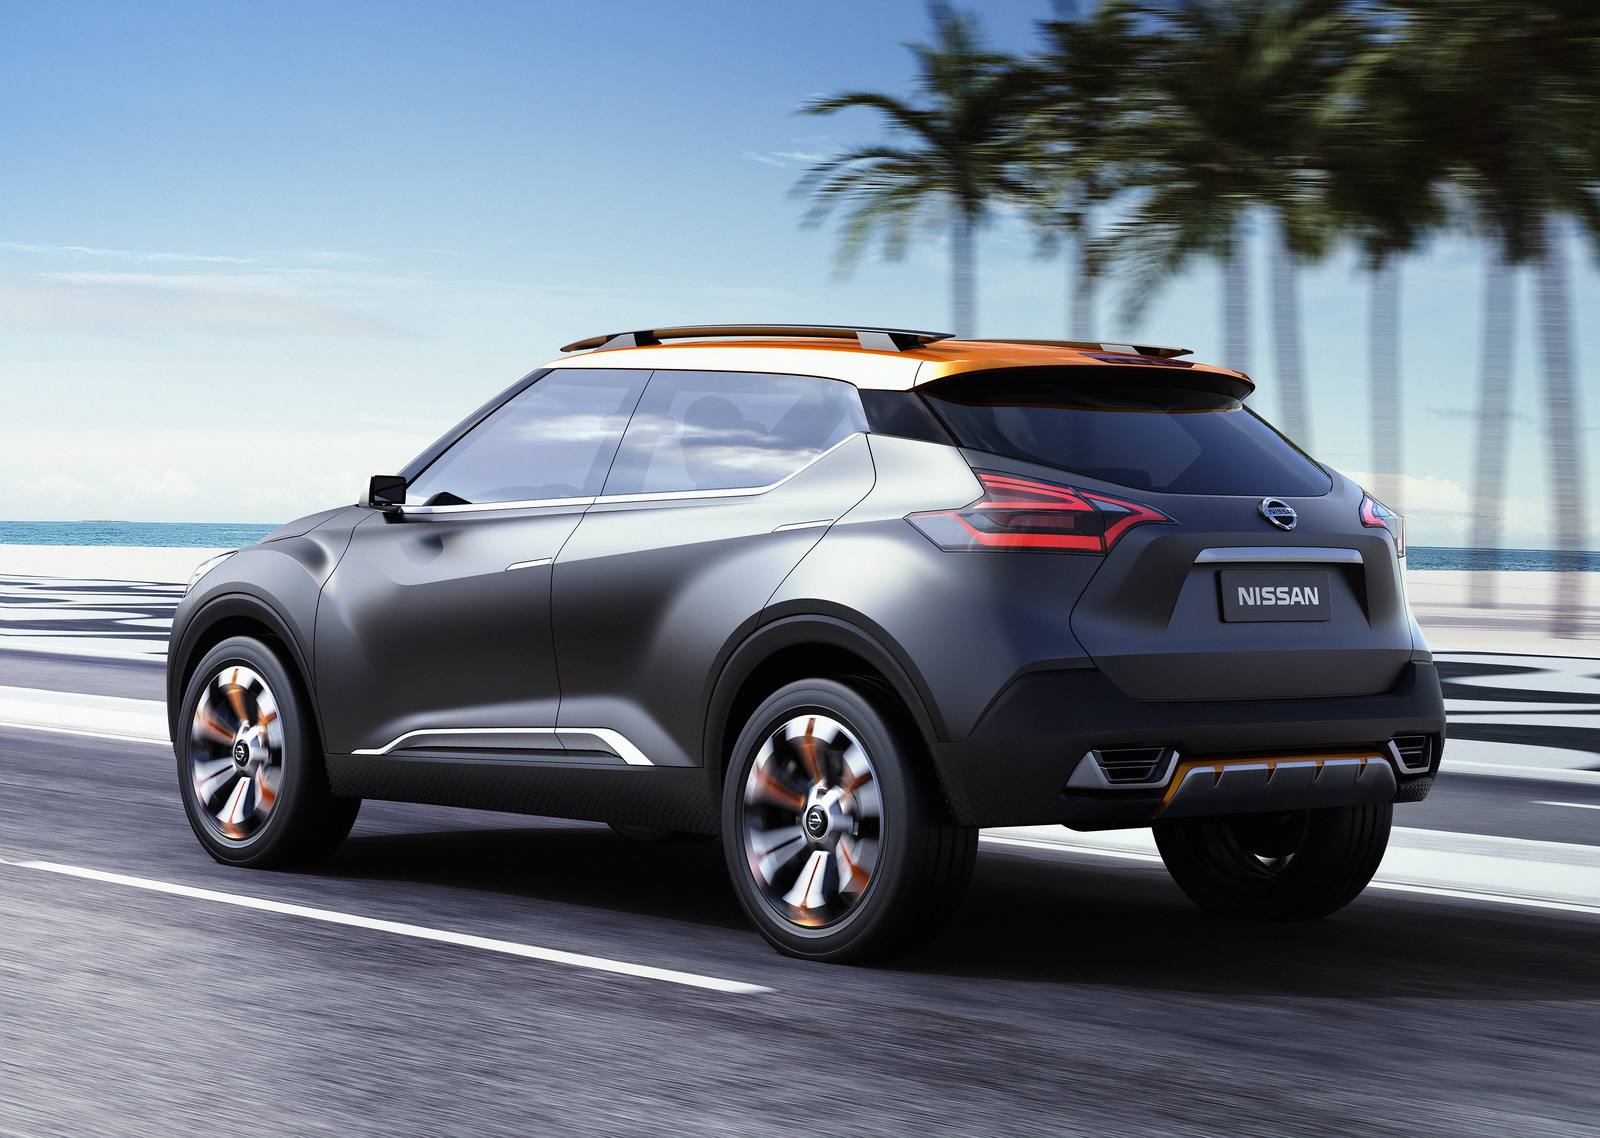 2016 Nissan Juke >> Nissan Kicks SUV to Debut in 2016 as the Official Car of the Olympics in Rio de Janeiro ...